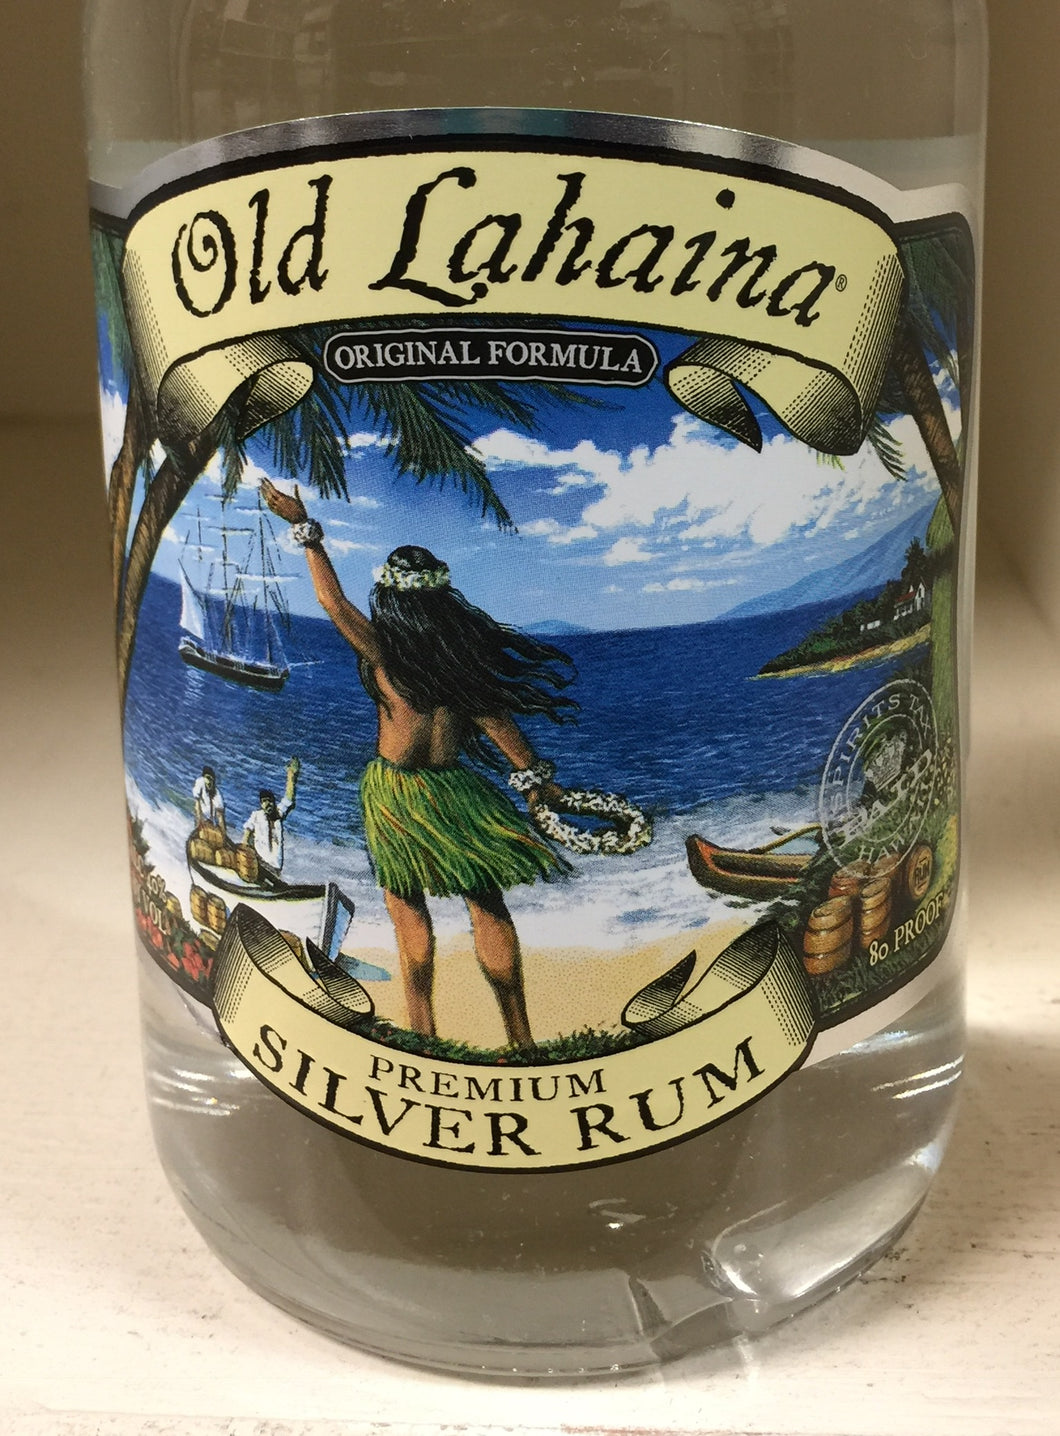 Old Lahaina Silver Rum